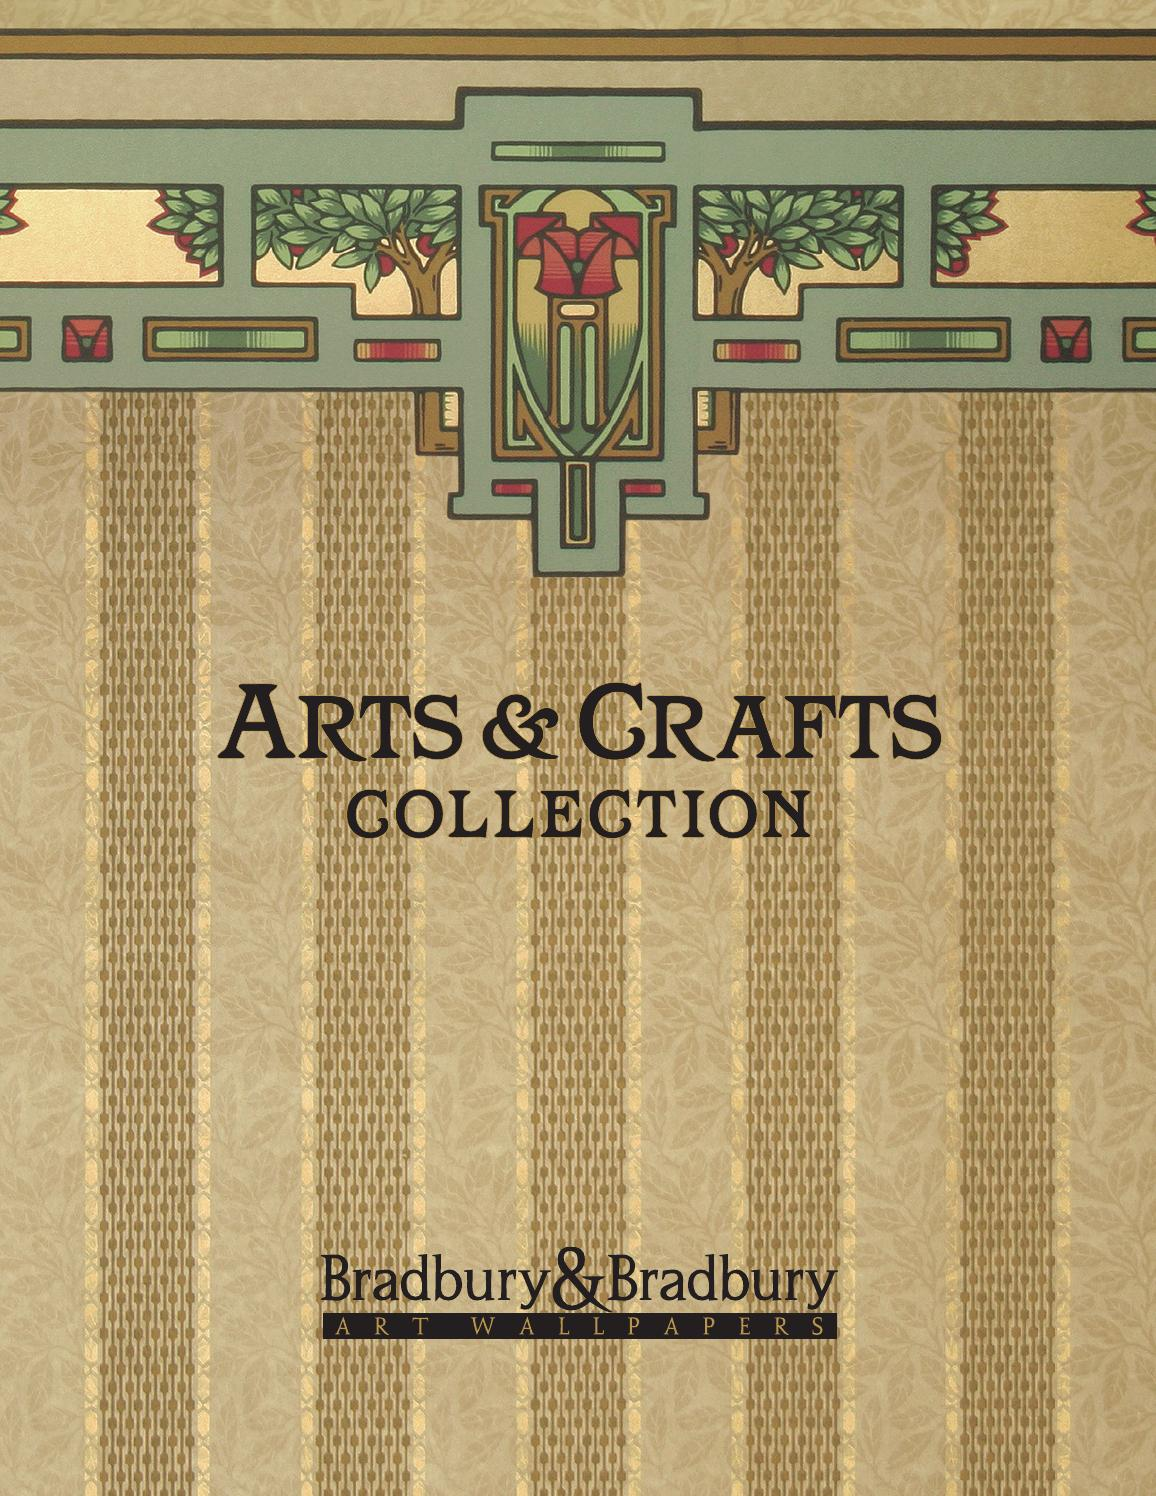 Arts & Crafts Collection By Bradbury & Bradbury Art